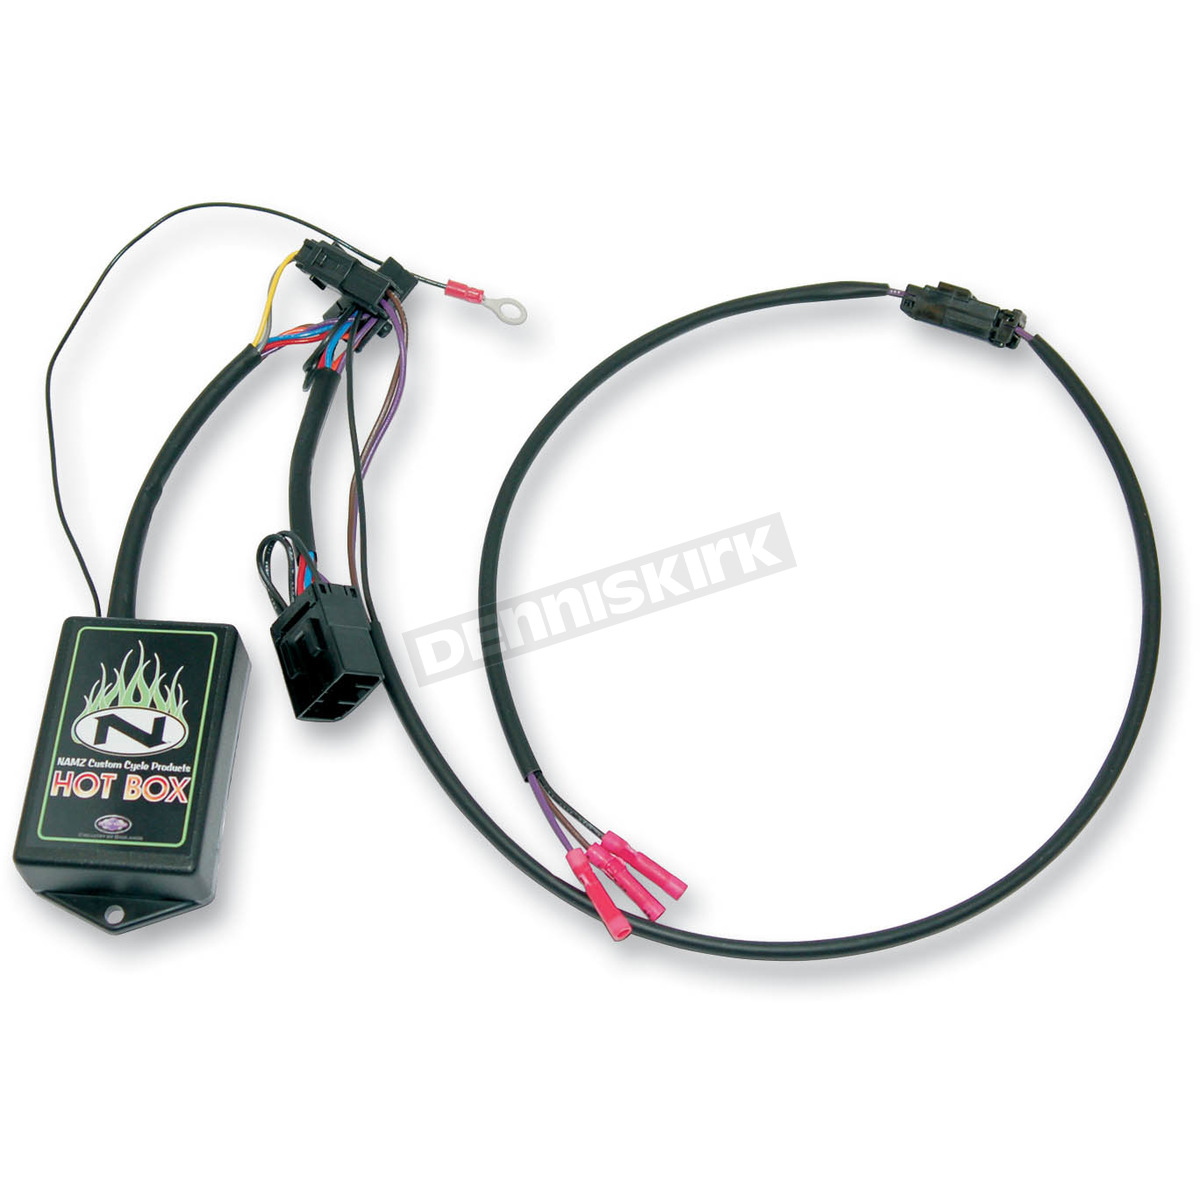 NAMZ Custom Cycle Products TourPak Quick Disconnect Wiring – Kirk Wiring Harness